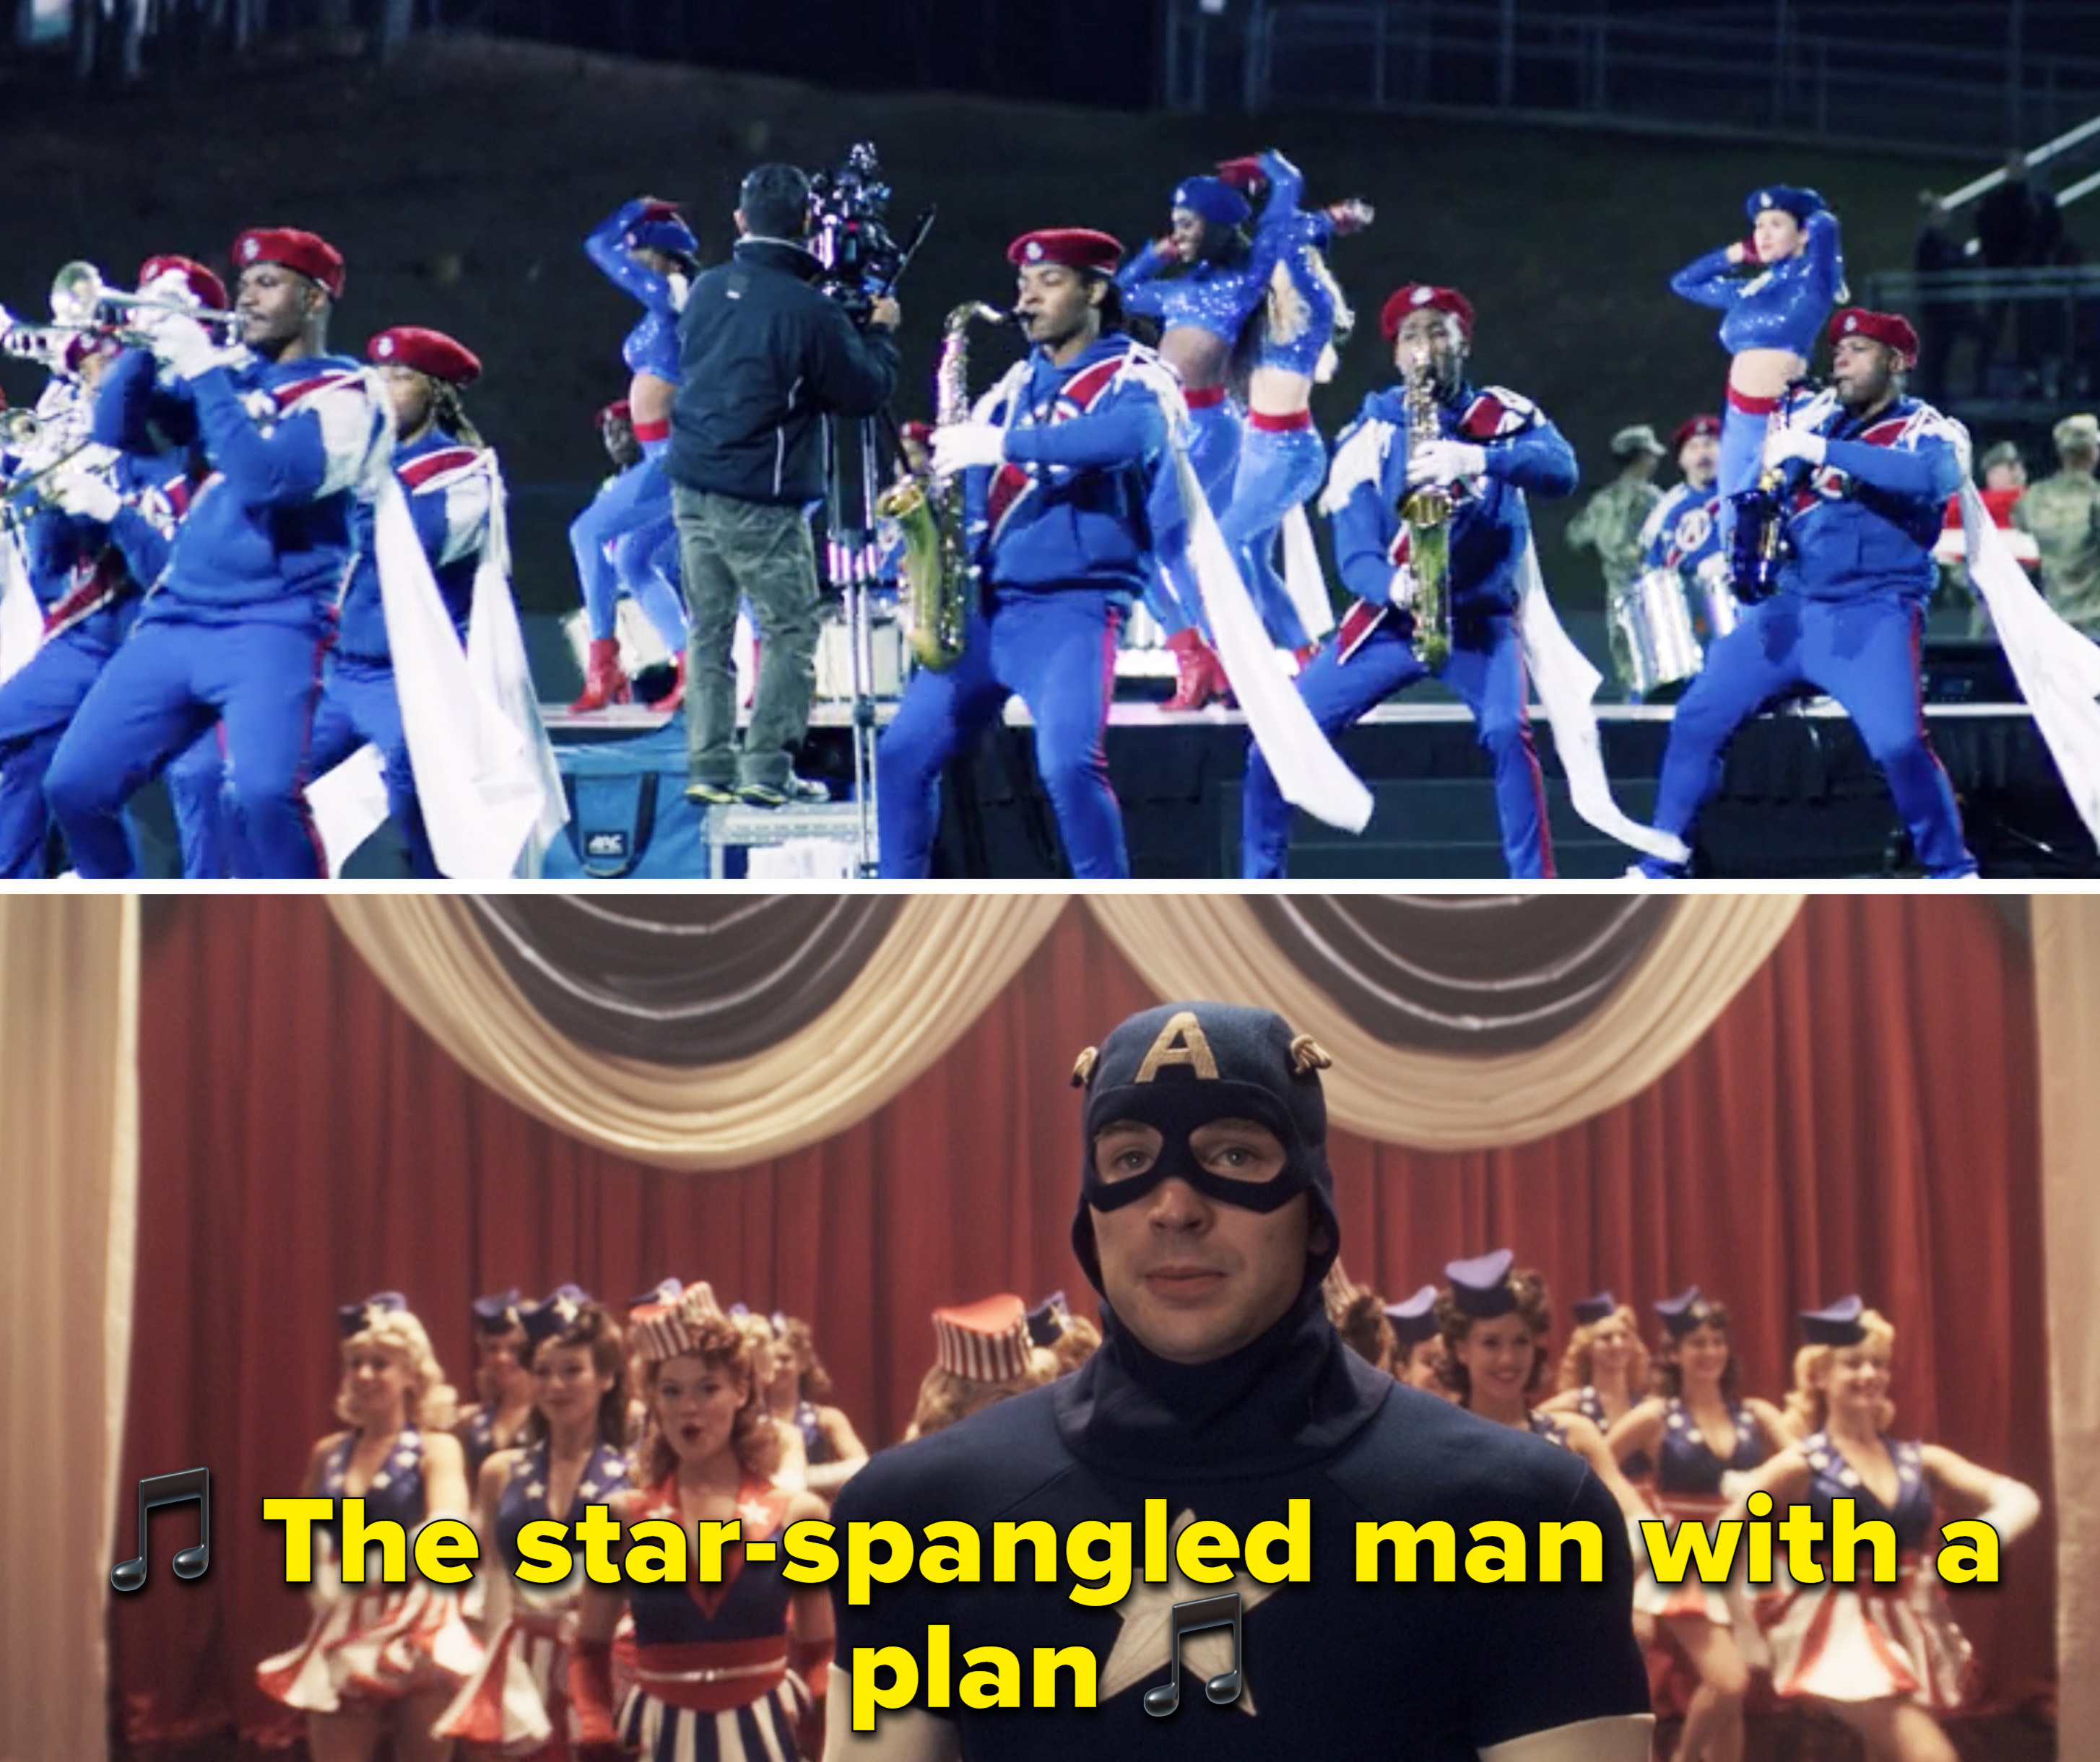 A marching band playing music vs. Captain America talking on stage